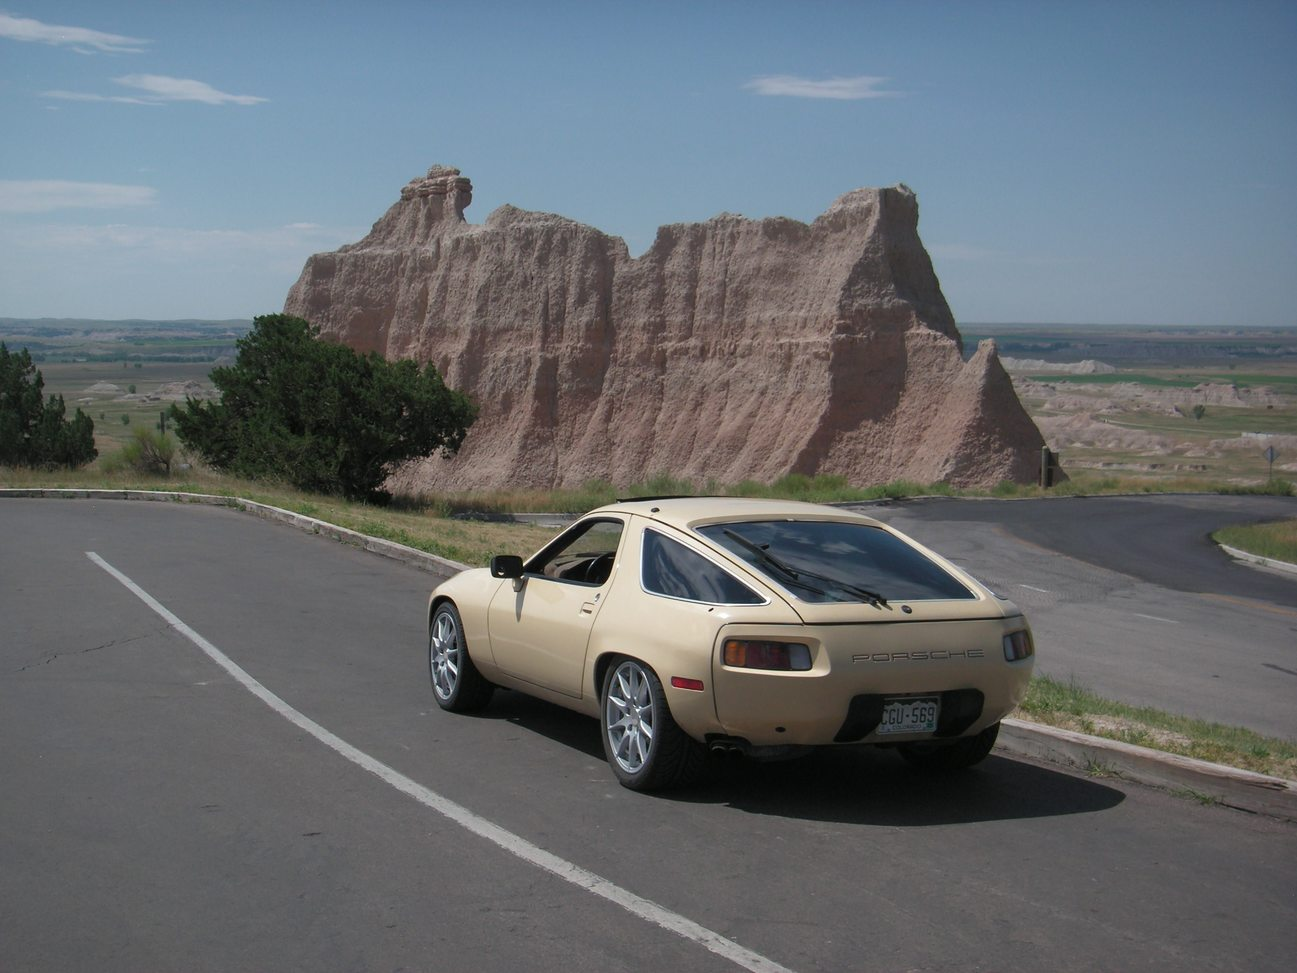 sharks in the badlands 928s event a cream white porsche 928 with landscape in the background